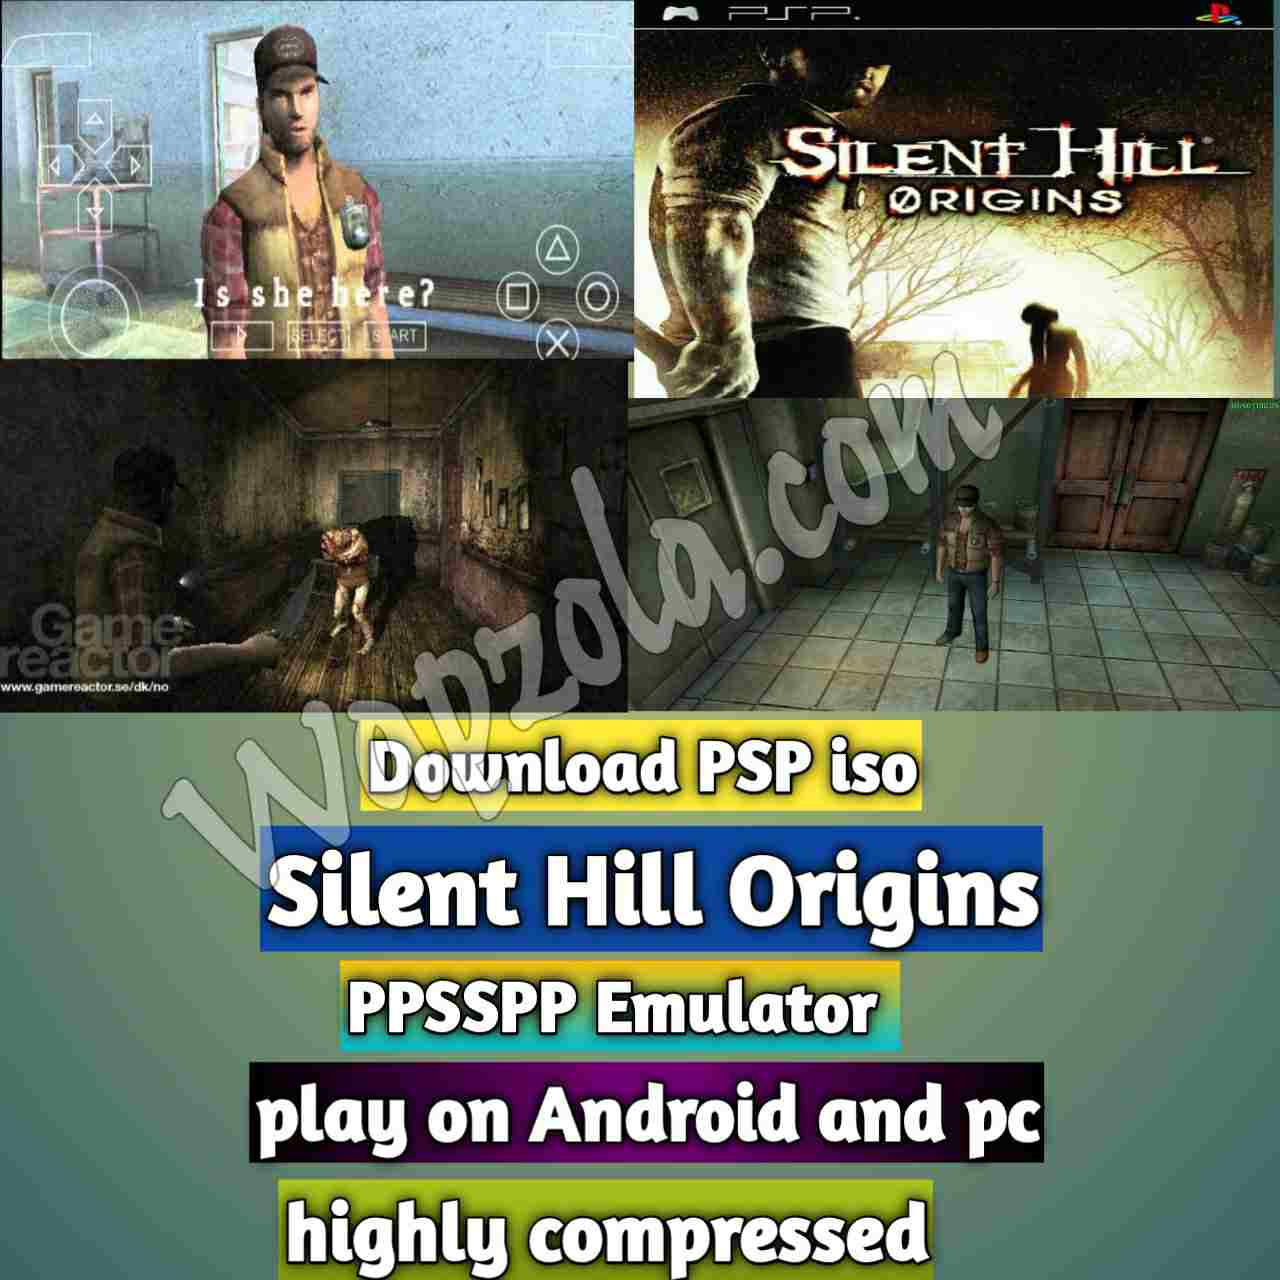 download-silent-hill-origins-iso-ppsspp-psp-highly-compressed